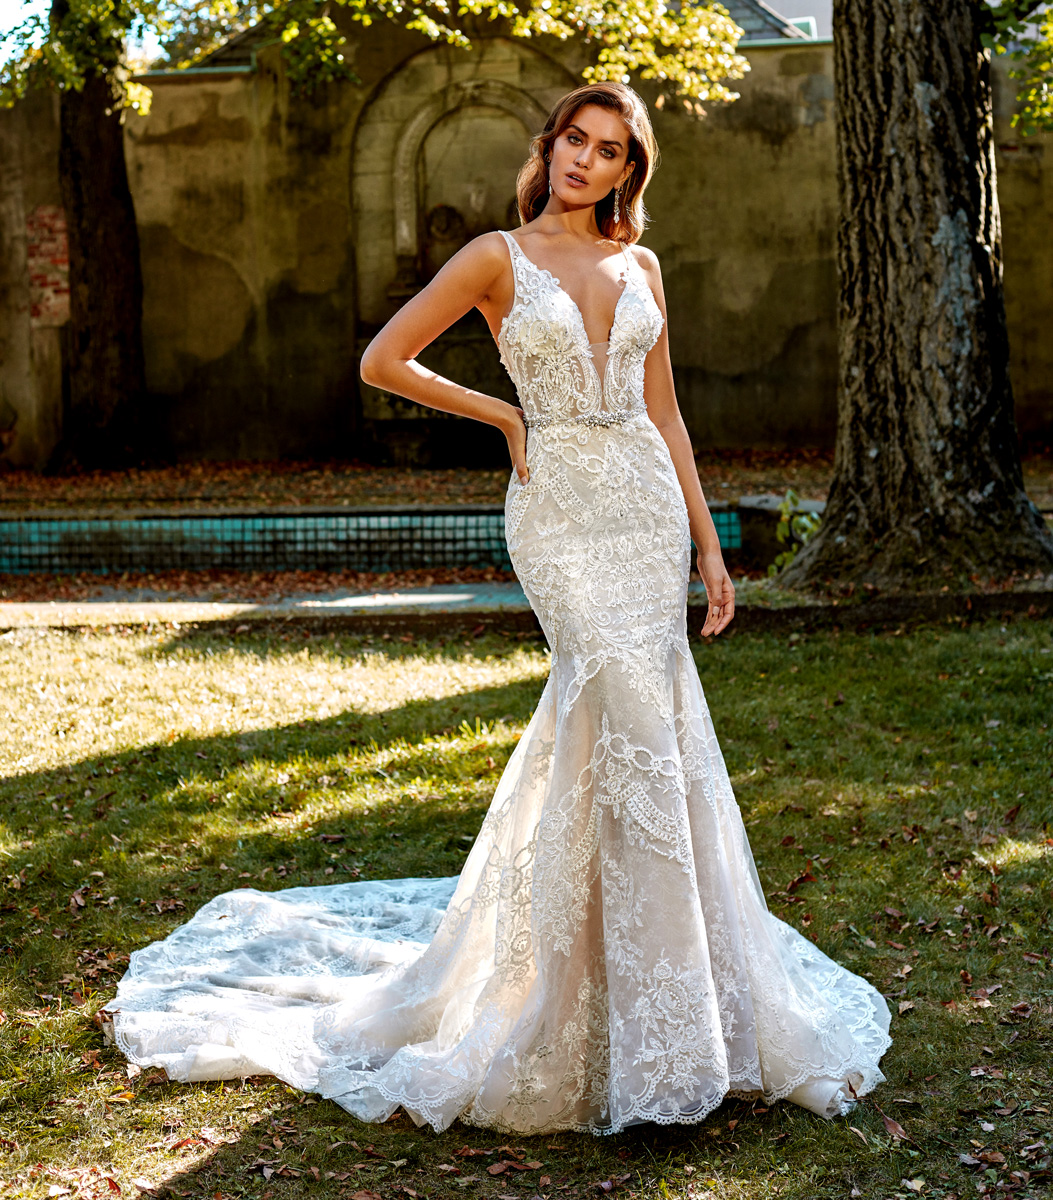 Bridal Gowns by Eve of Milady - Boutique wedding dresses Style 1612